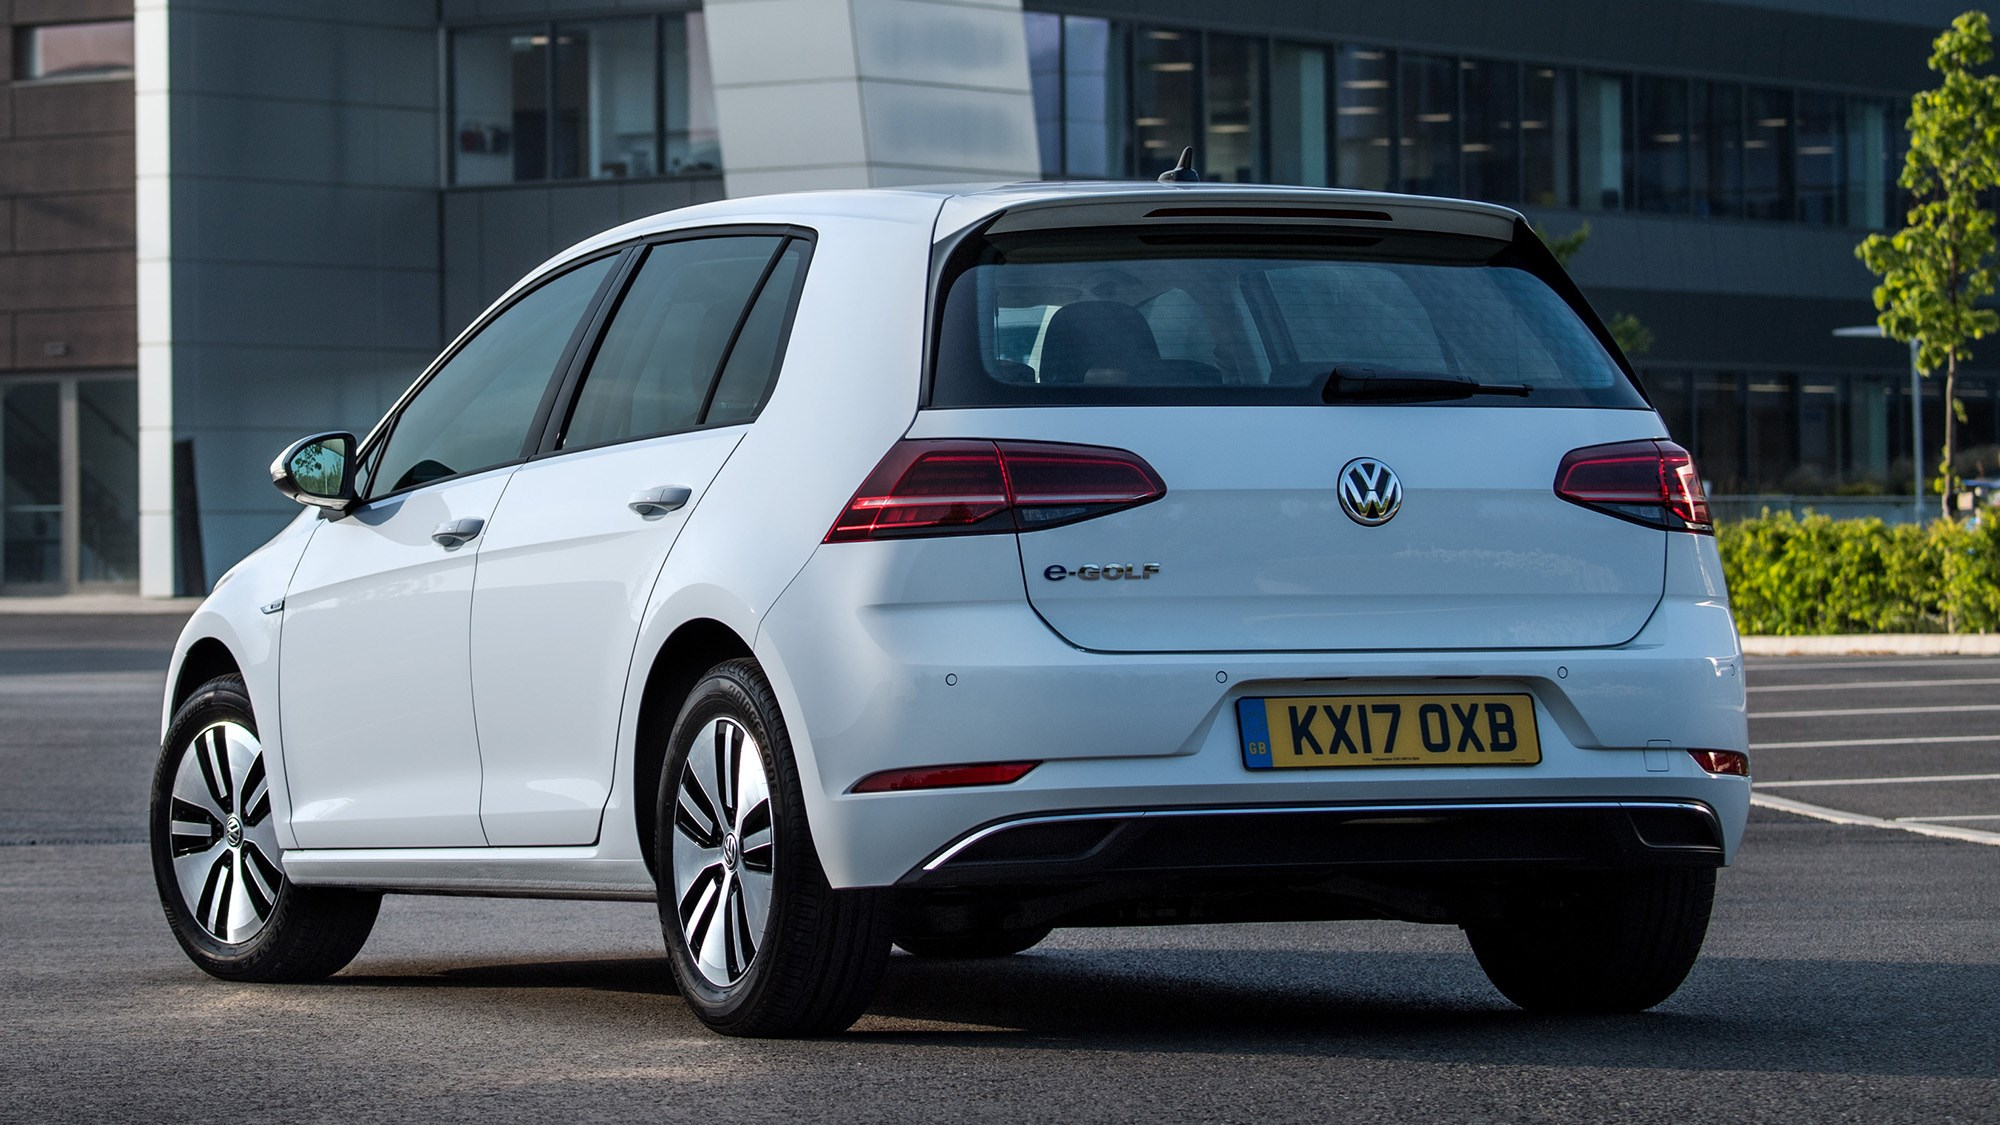 Volkswagen e-Golf rear view